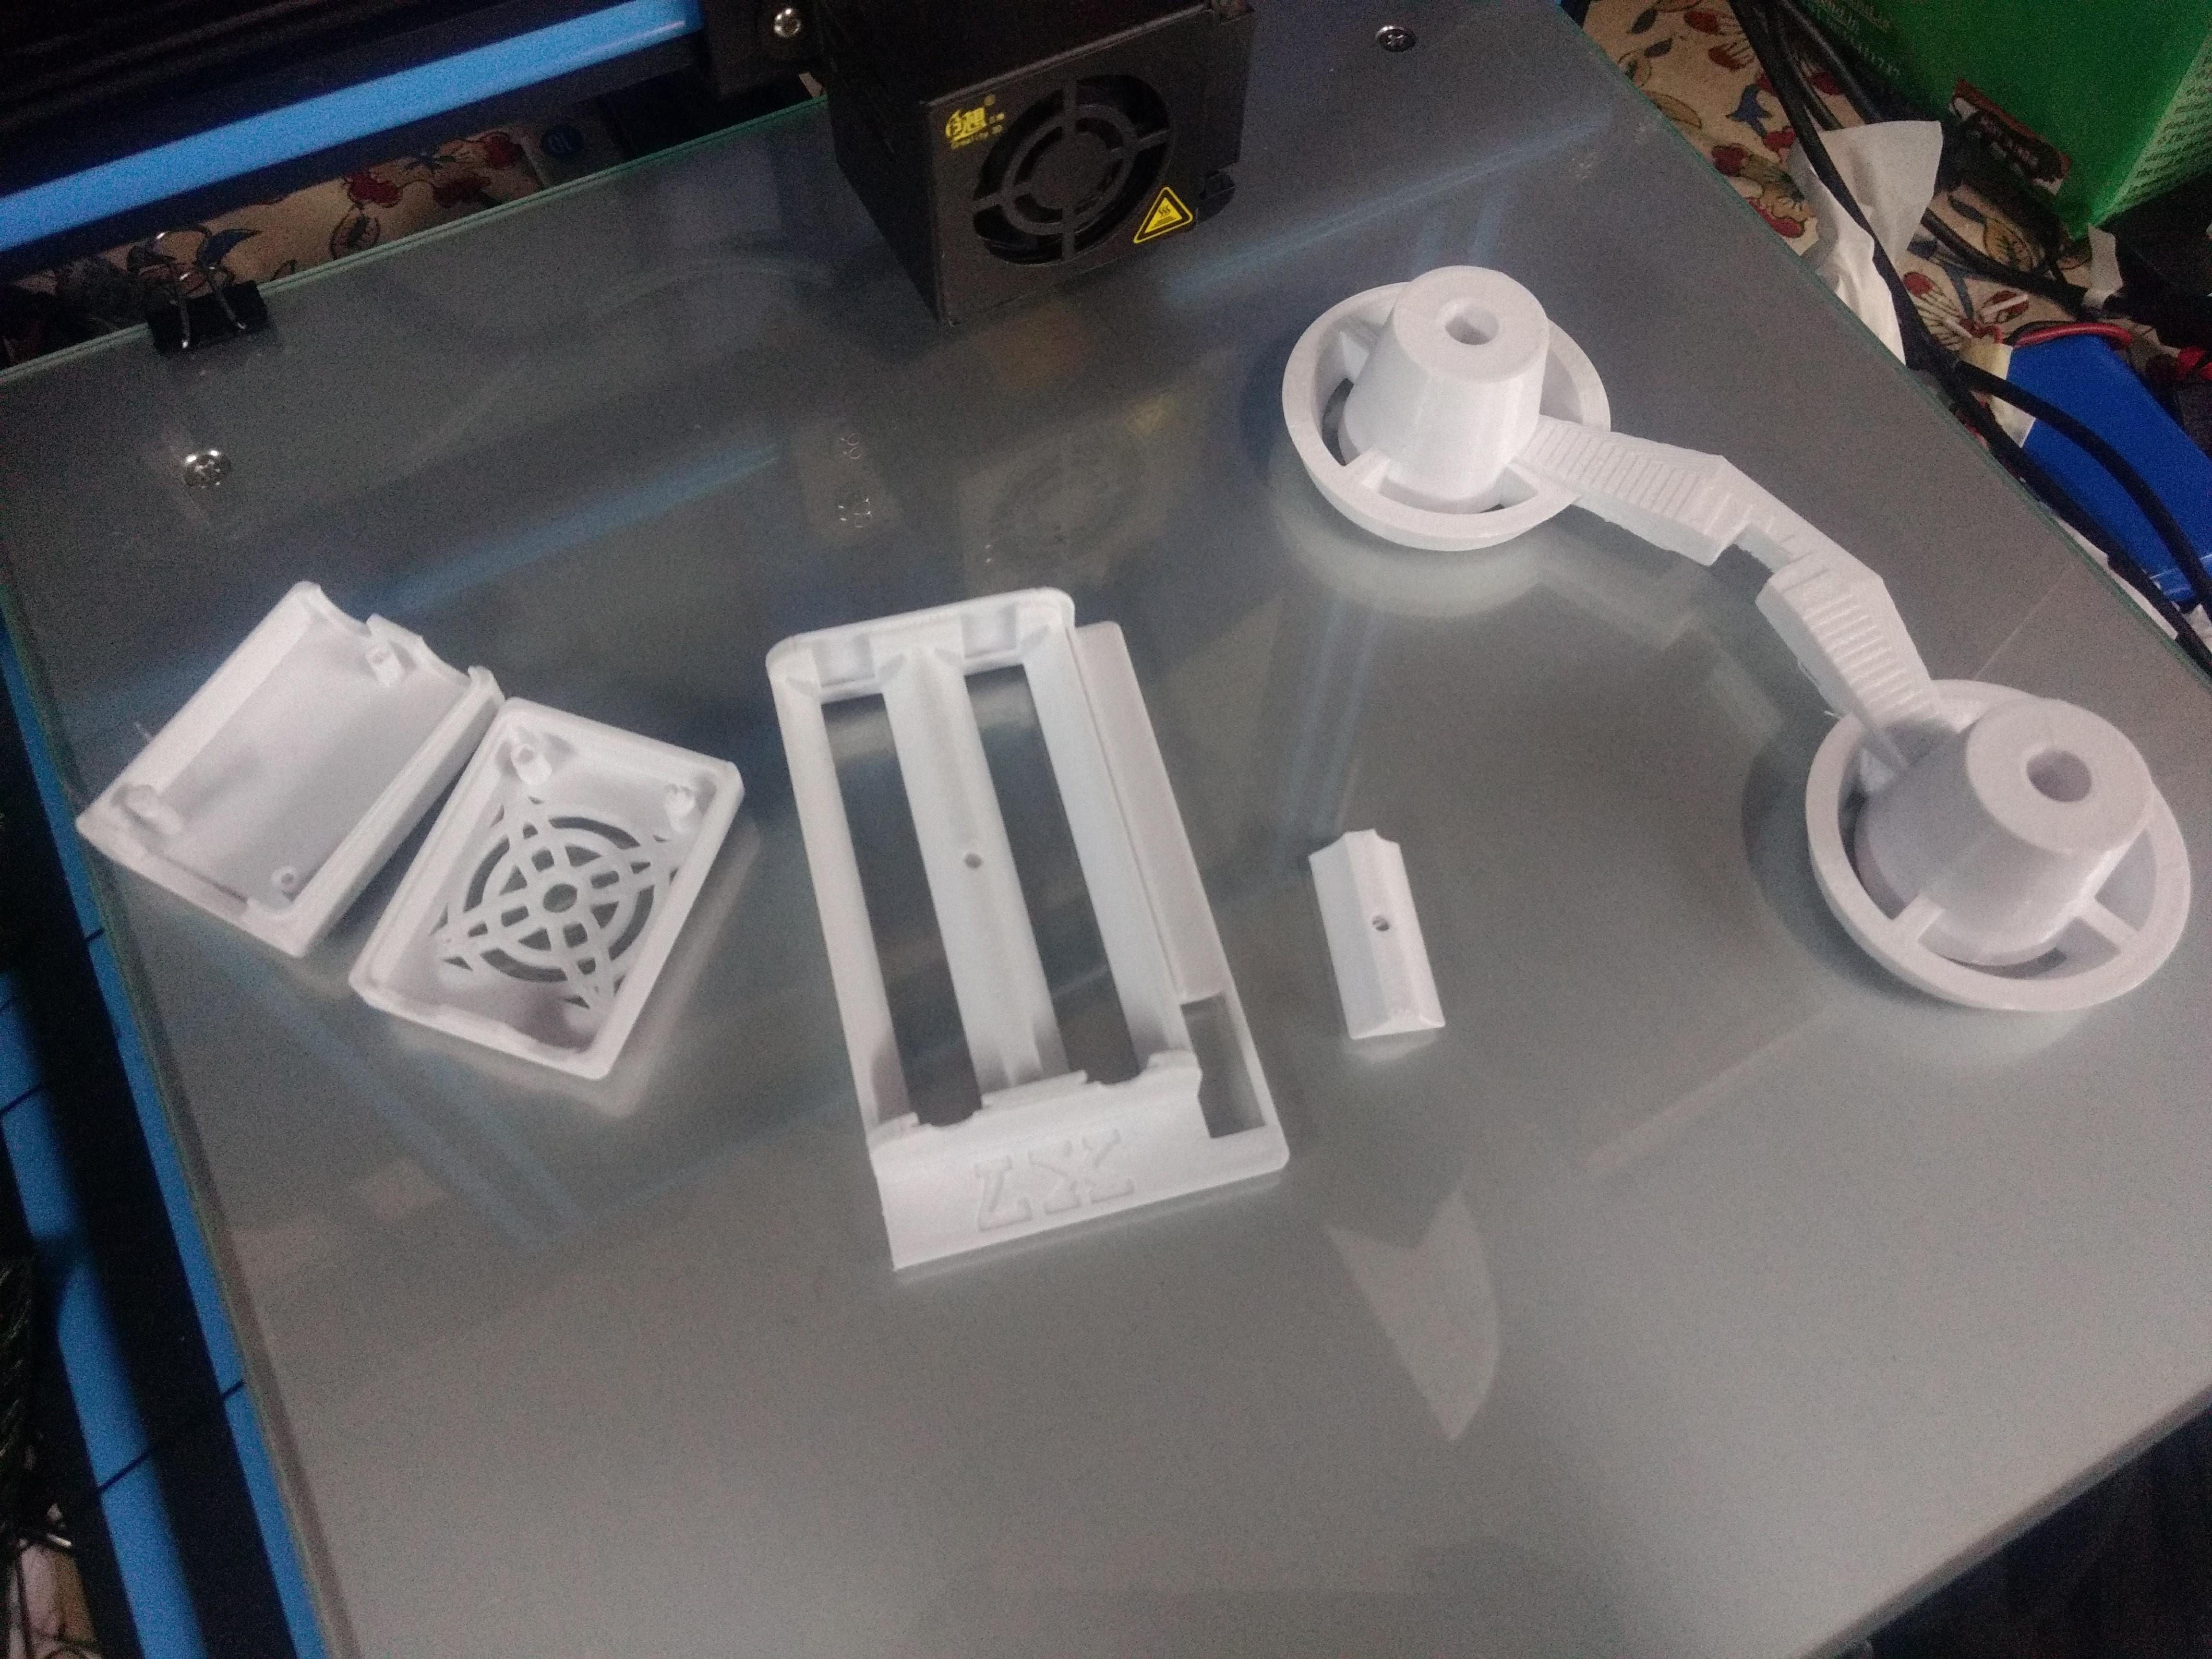 The whitePLA I've been using so far without much issues